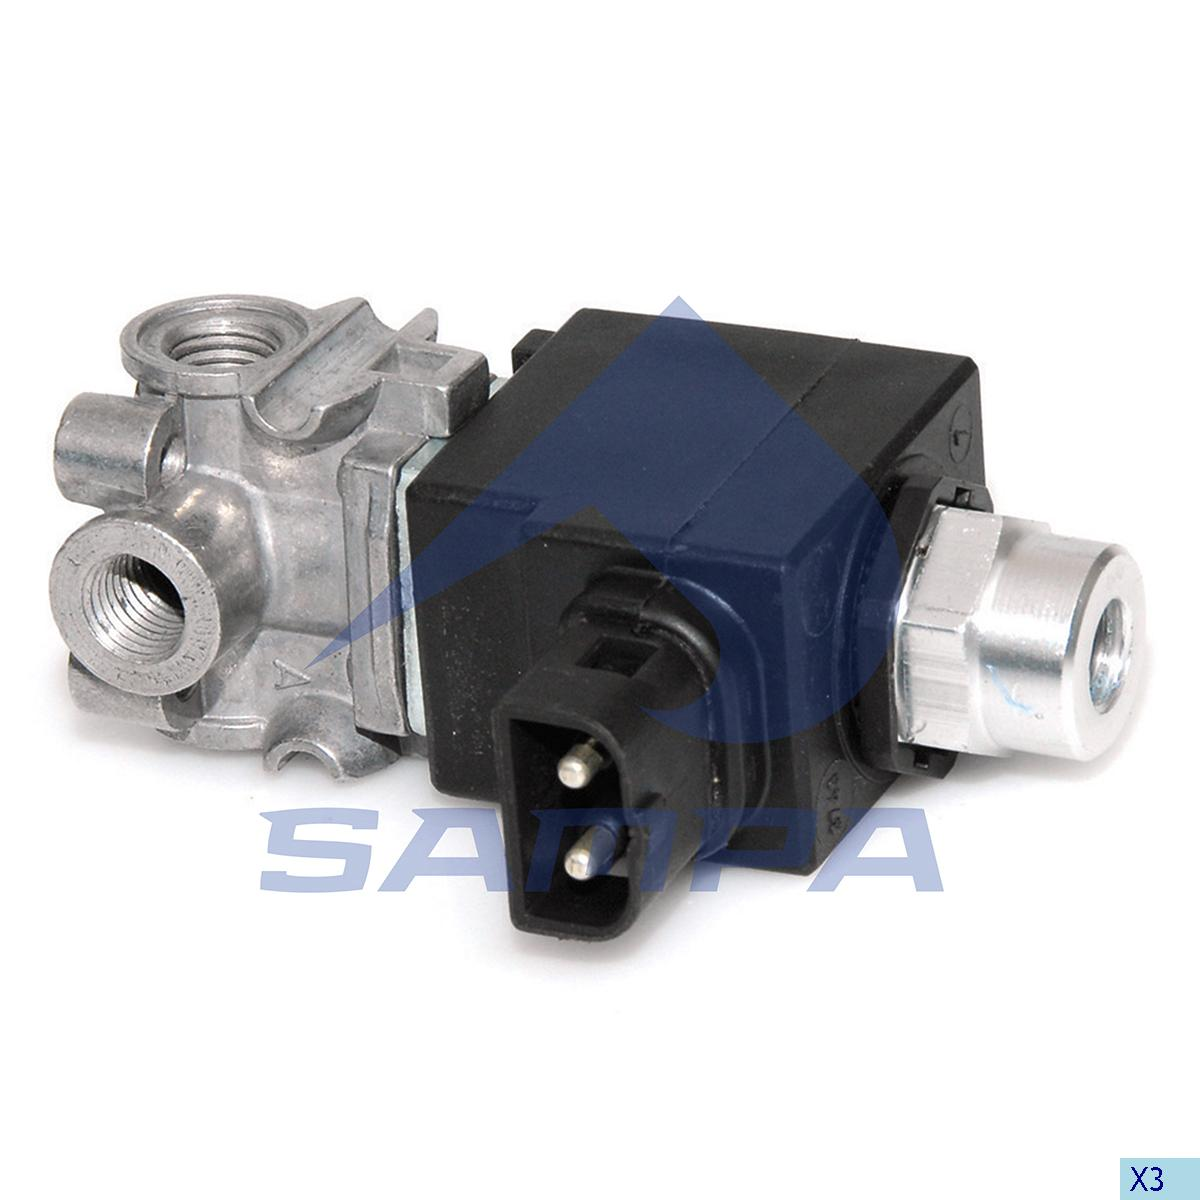 Solenoid Valve, Volvo, Compressed Air System